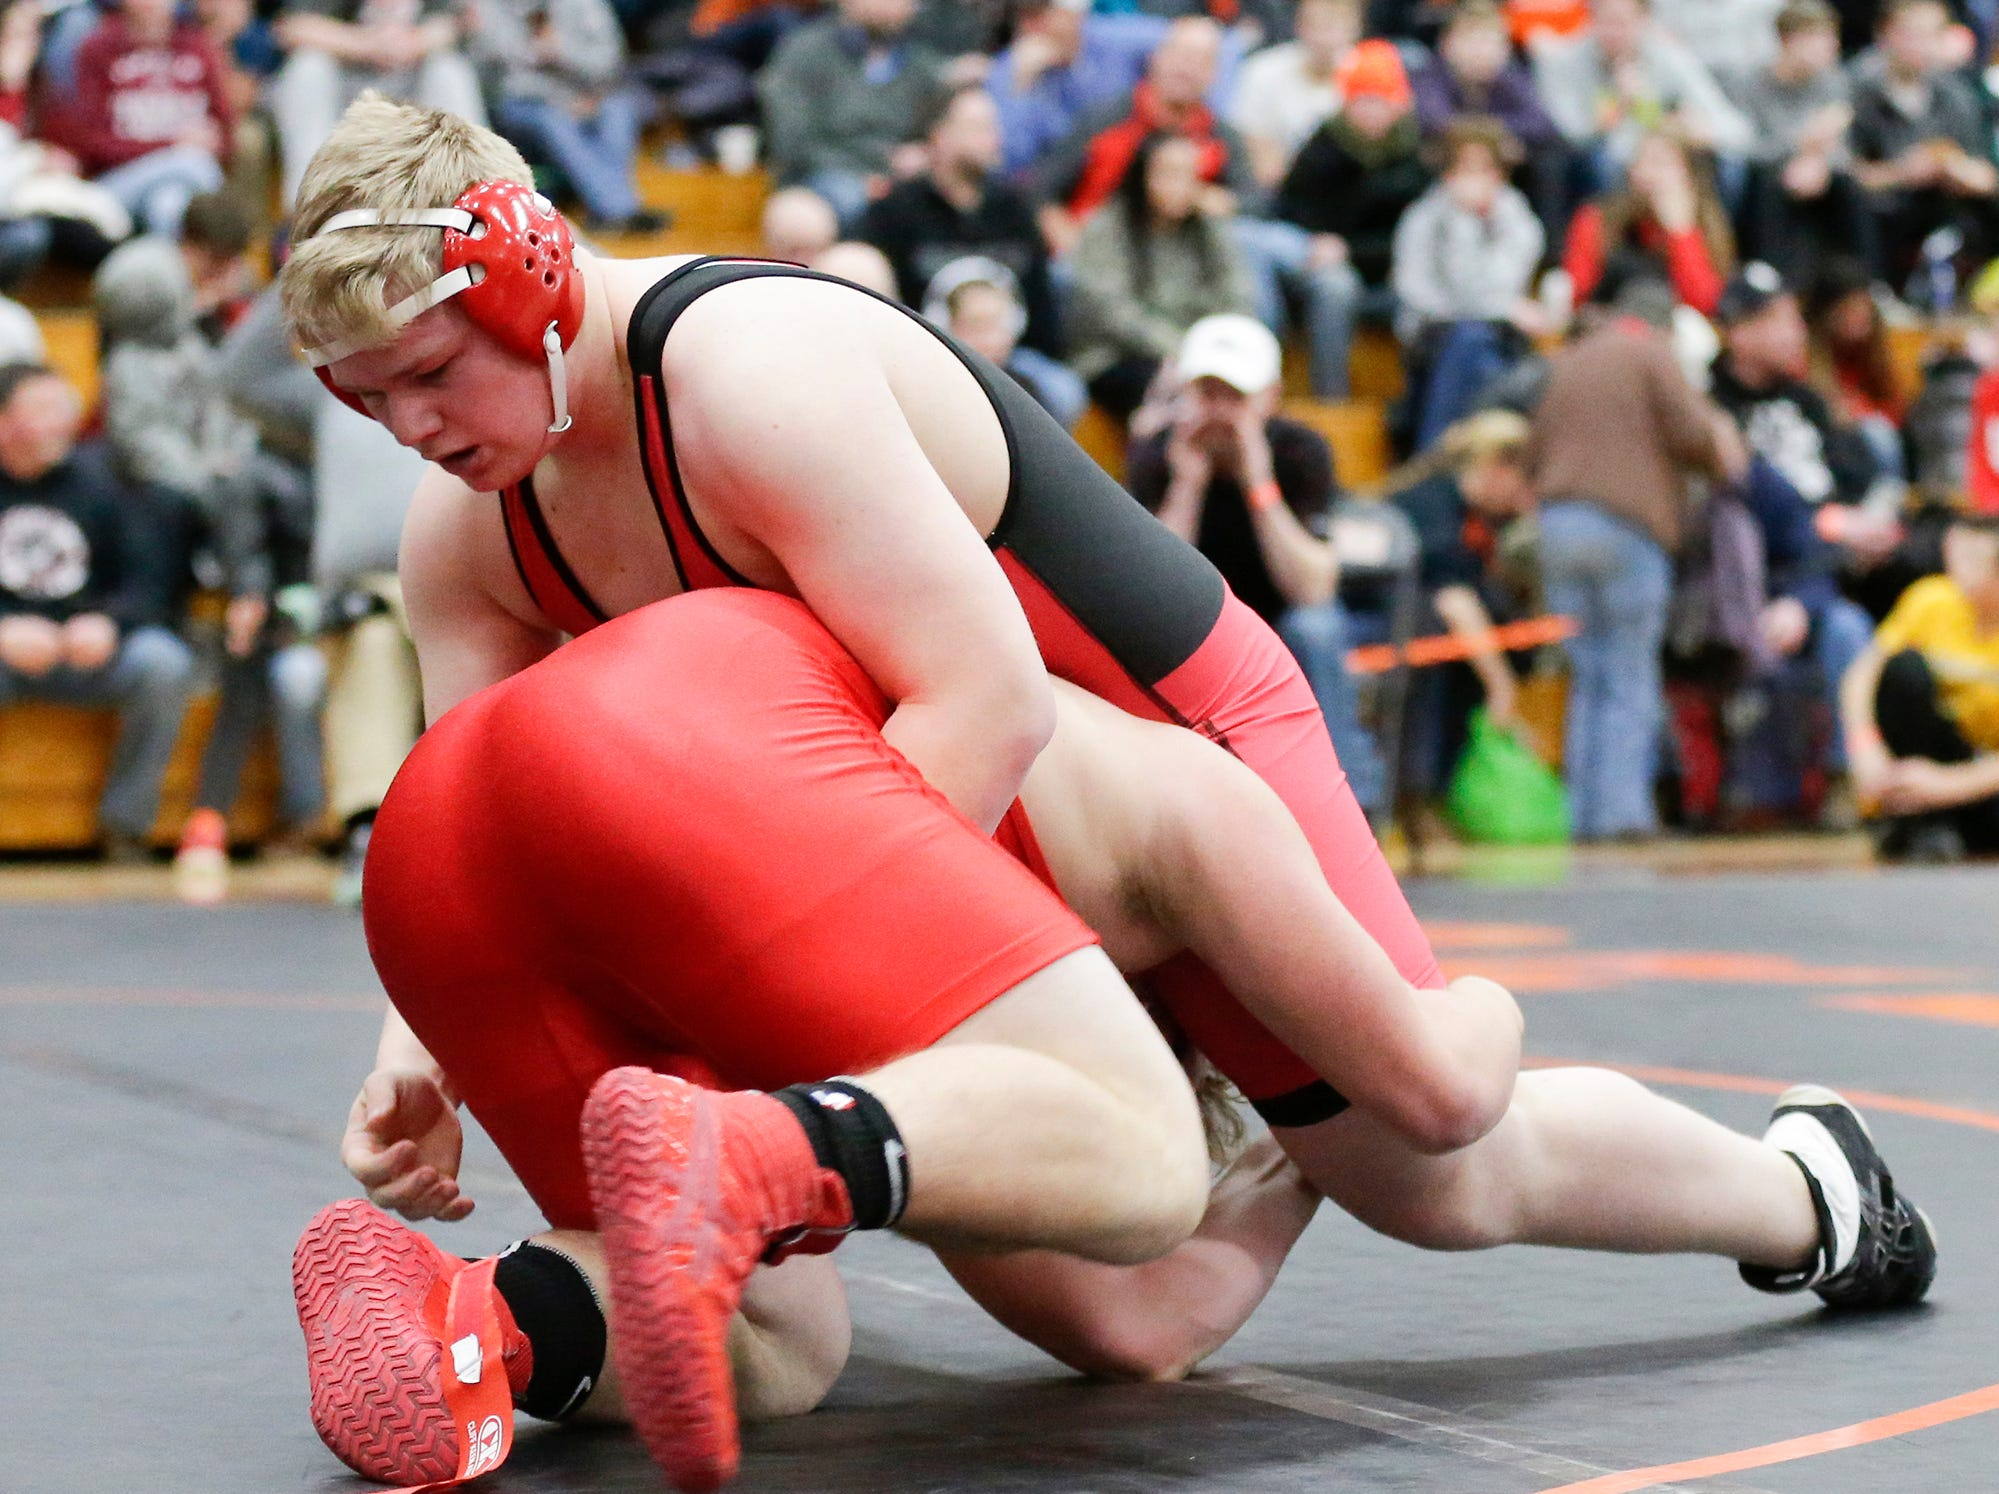 Collin Neuens of Neenah High School wrestles Alec Perelshtein of Homestaed High School in the 220 pound weight class during the WIAA sectionals Saturday, February 16, 2019 in Hartford, Wis. Perelshtein won with a pin. Doug Raflik/USA TODAY NETWORK-Wisconsin